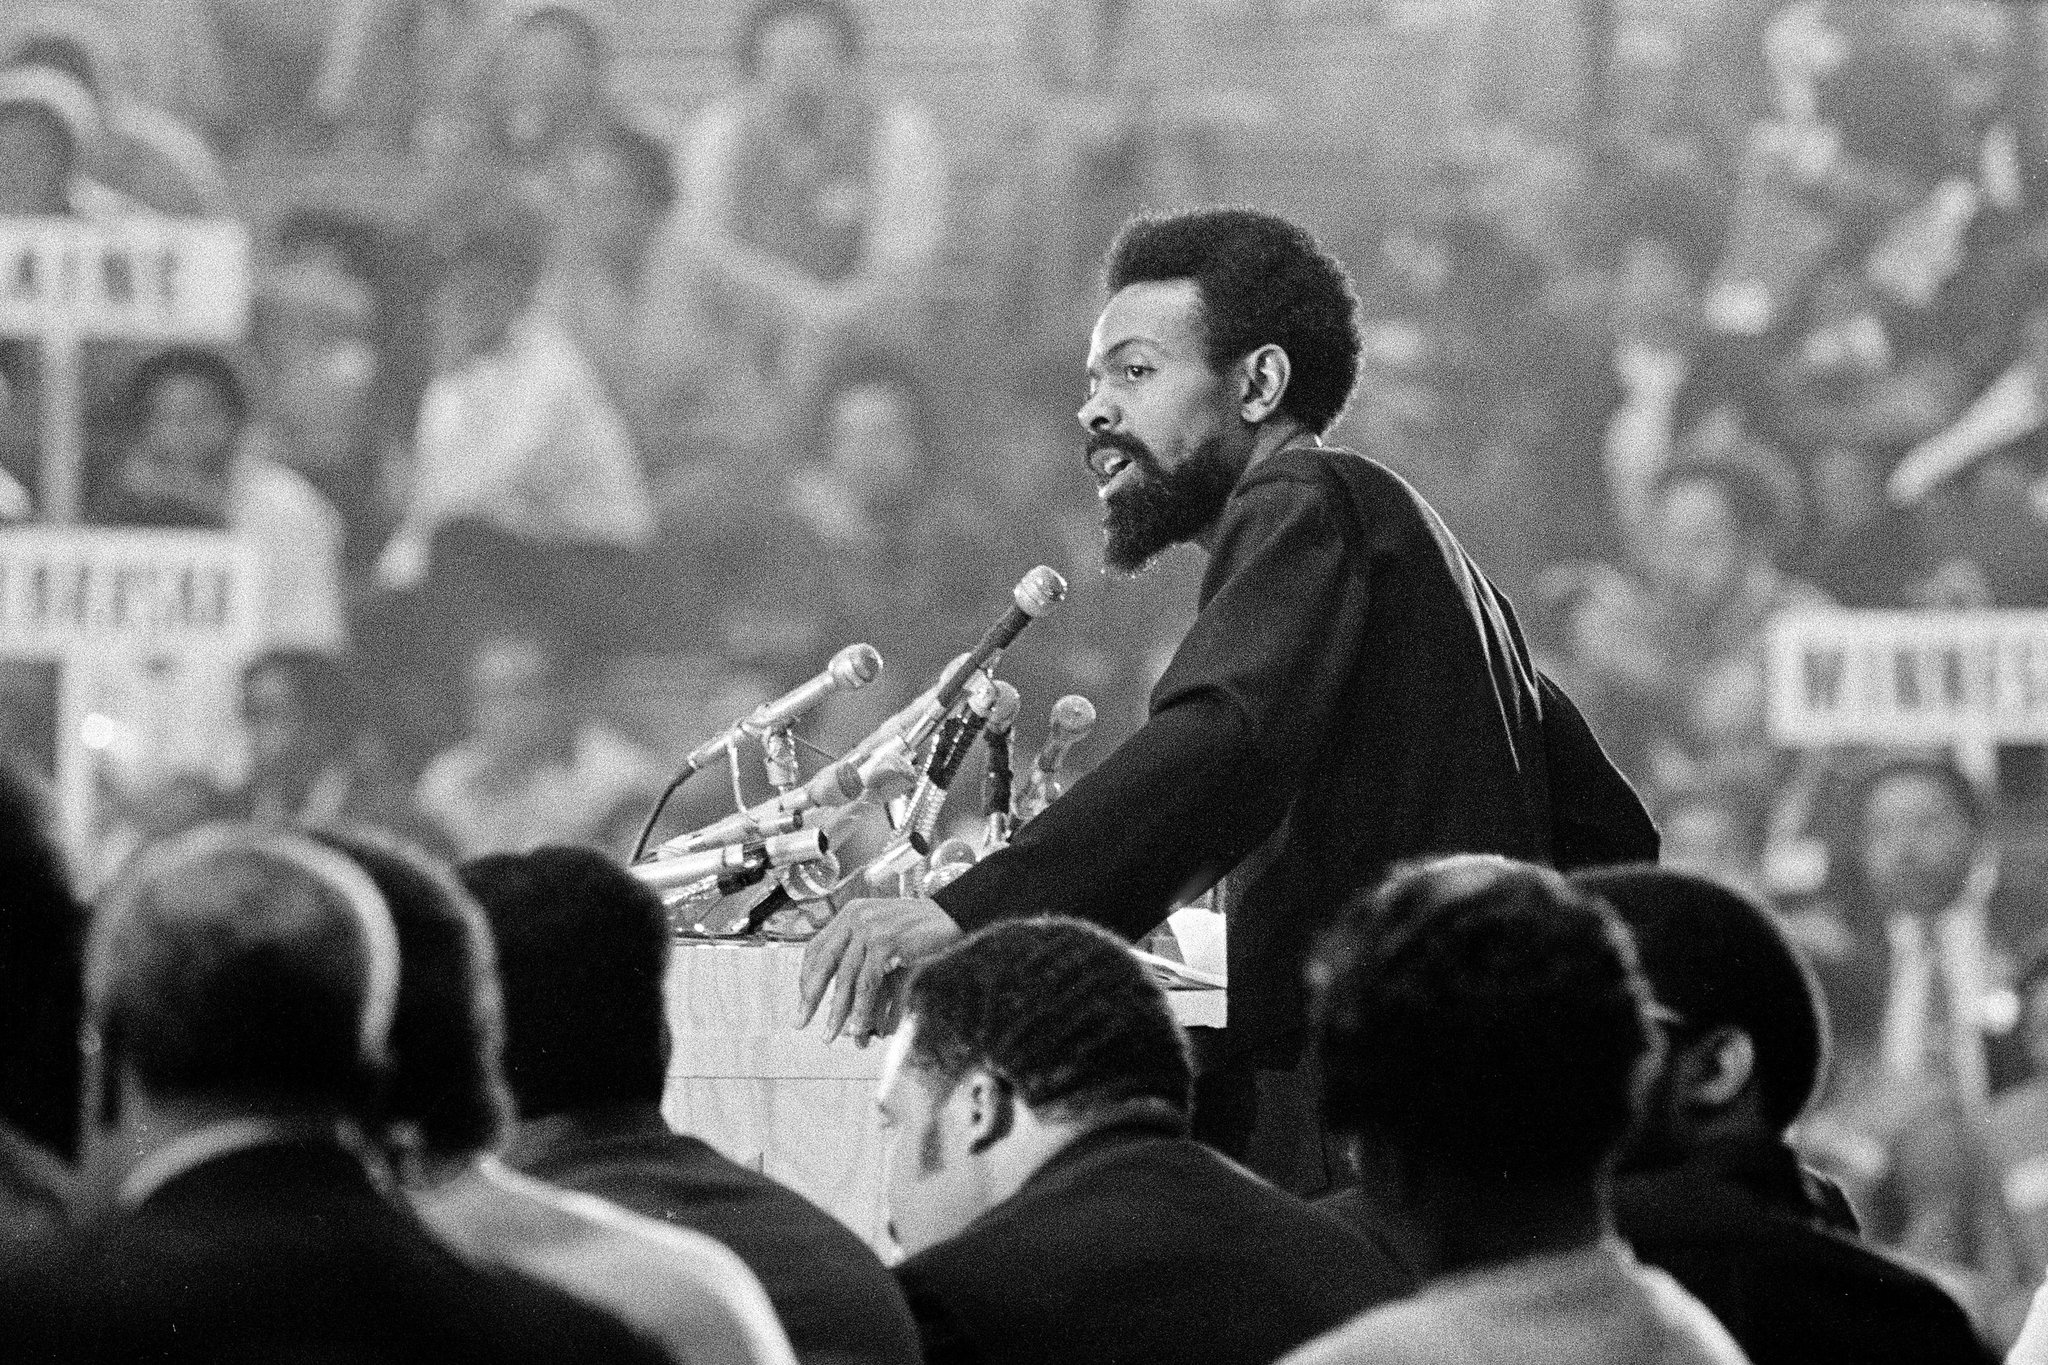 phenomenal poet and playwright amiri baraka dies at age ear photo credit gary settle ny times